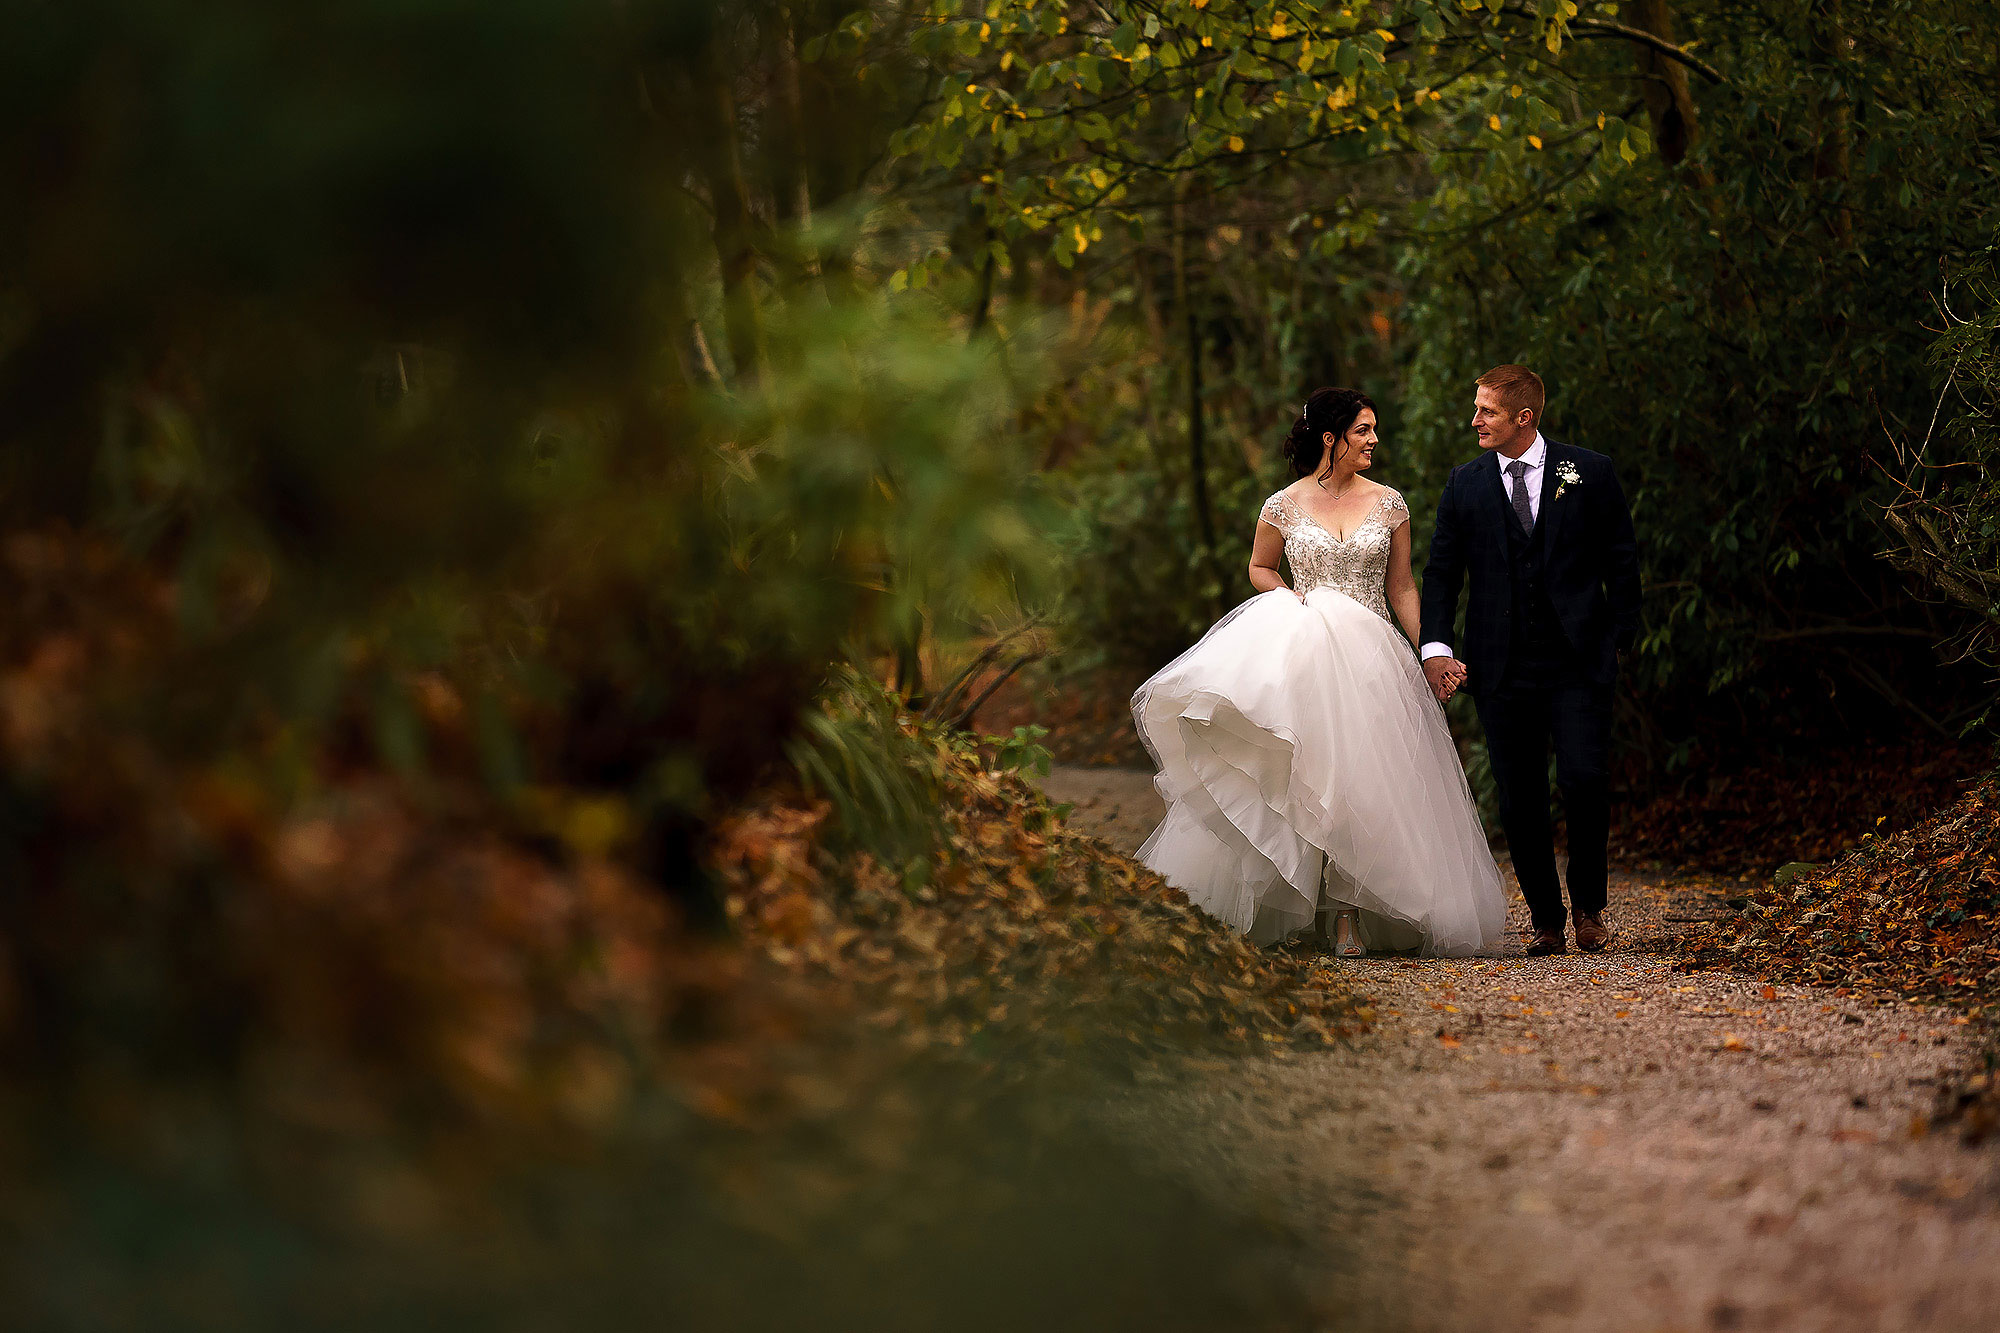 Bride and groom walking down the path way through the trees hand in hand | Eaves Hall wedding photography by Toni Darcy